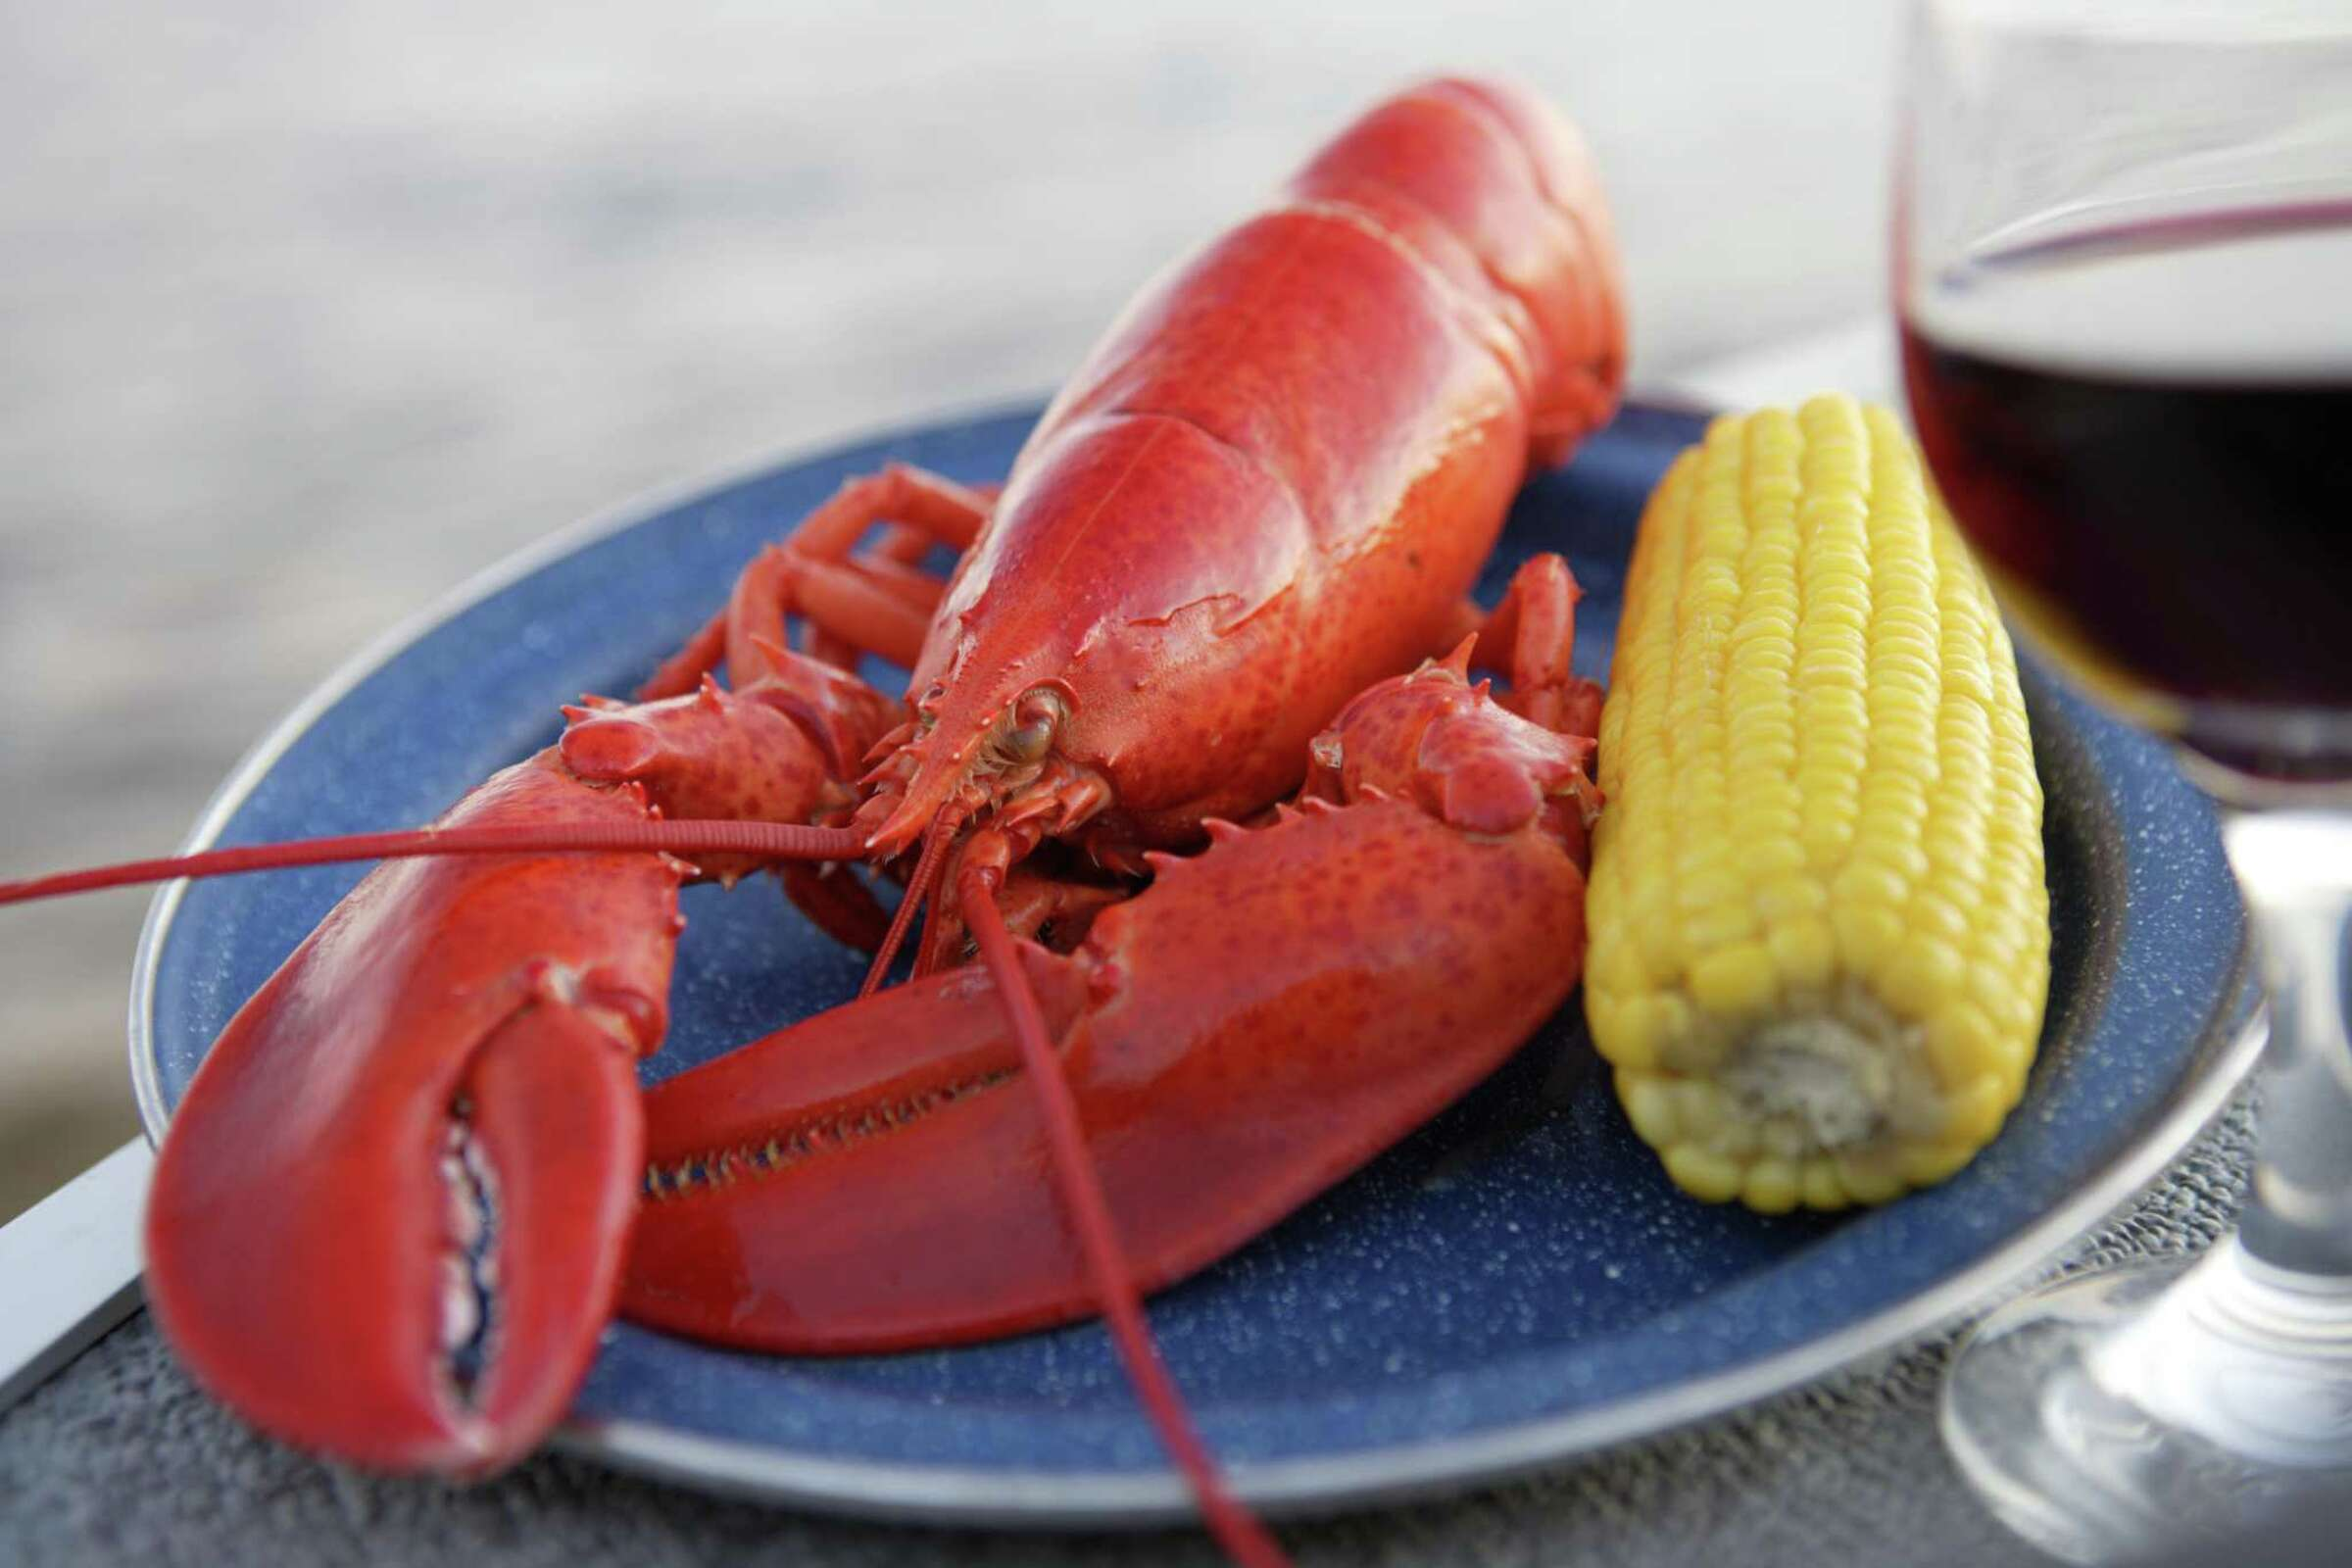 Where to get a whole lobster meal in Connecticut